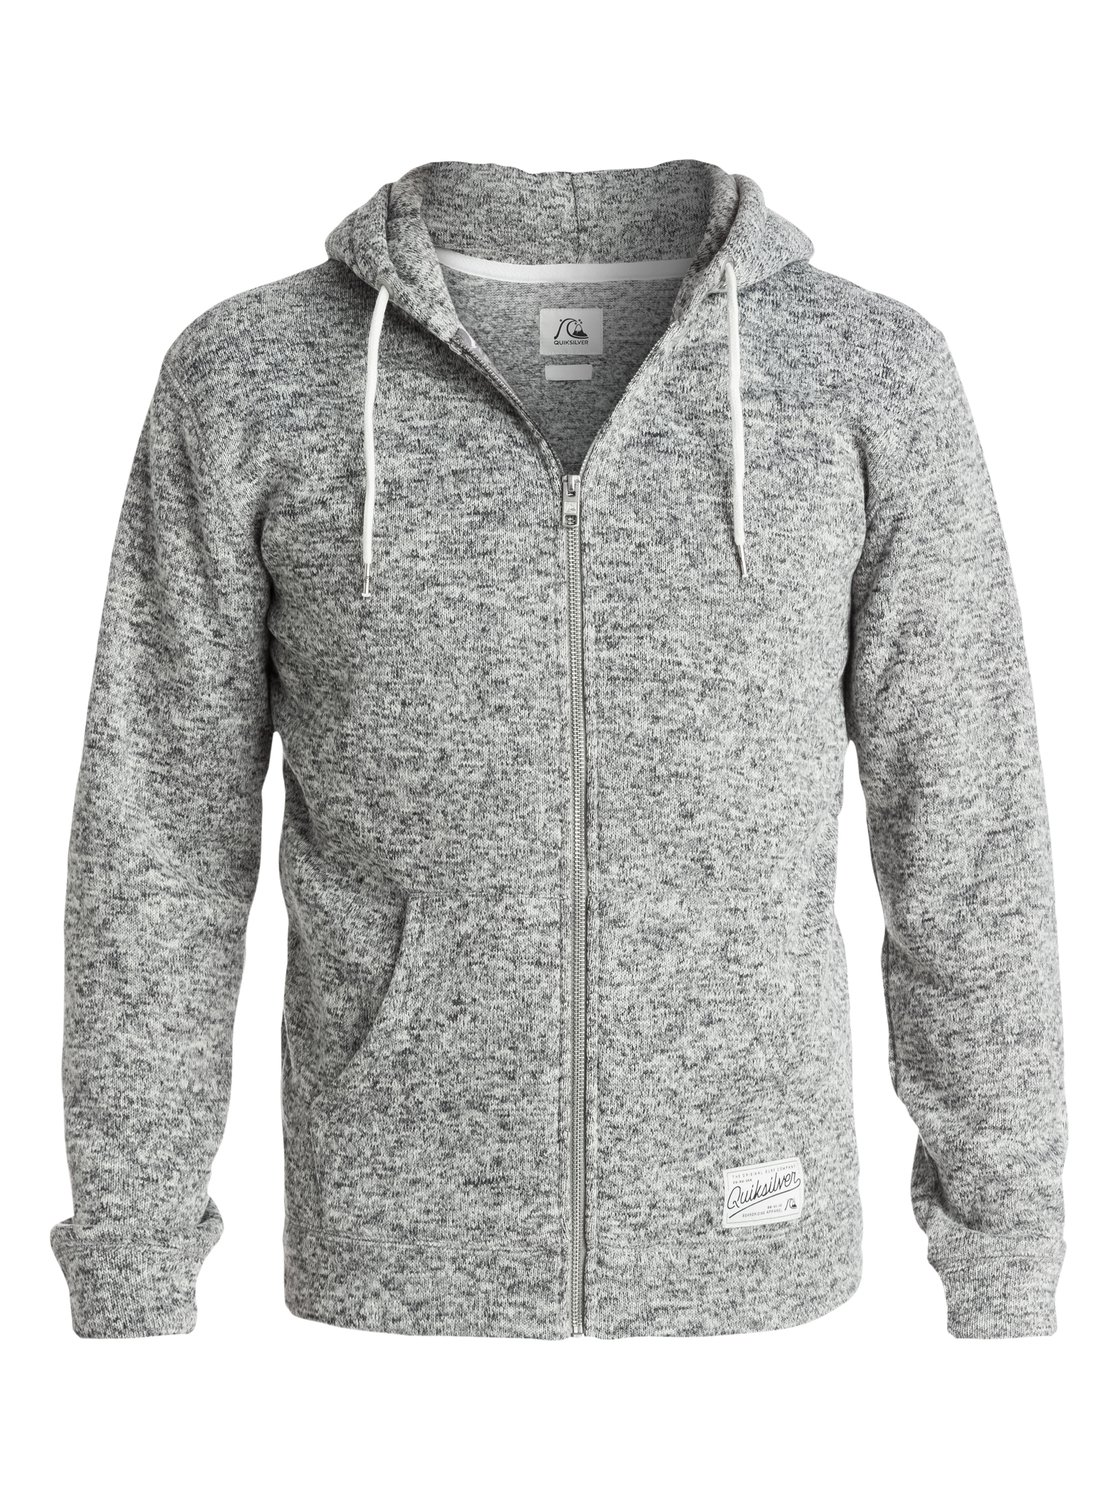 888701387312 Quiksilver Fleece Zip Hoodie Keller Up CqxIfZwwY